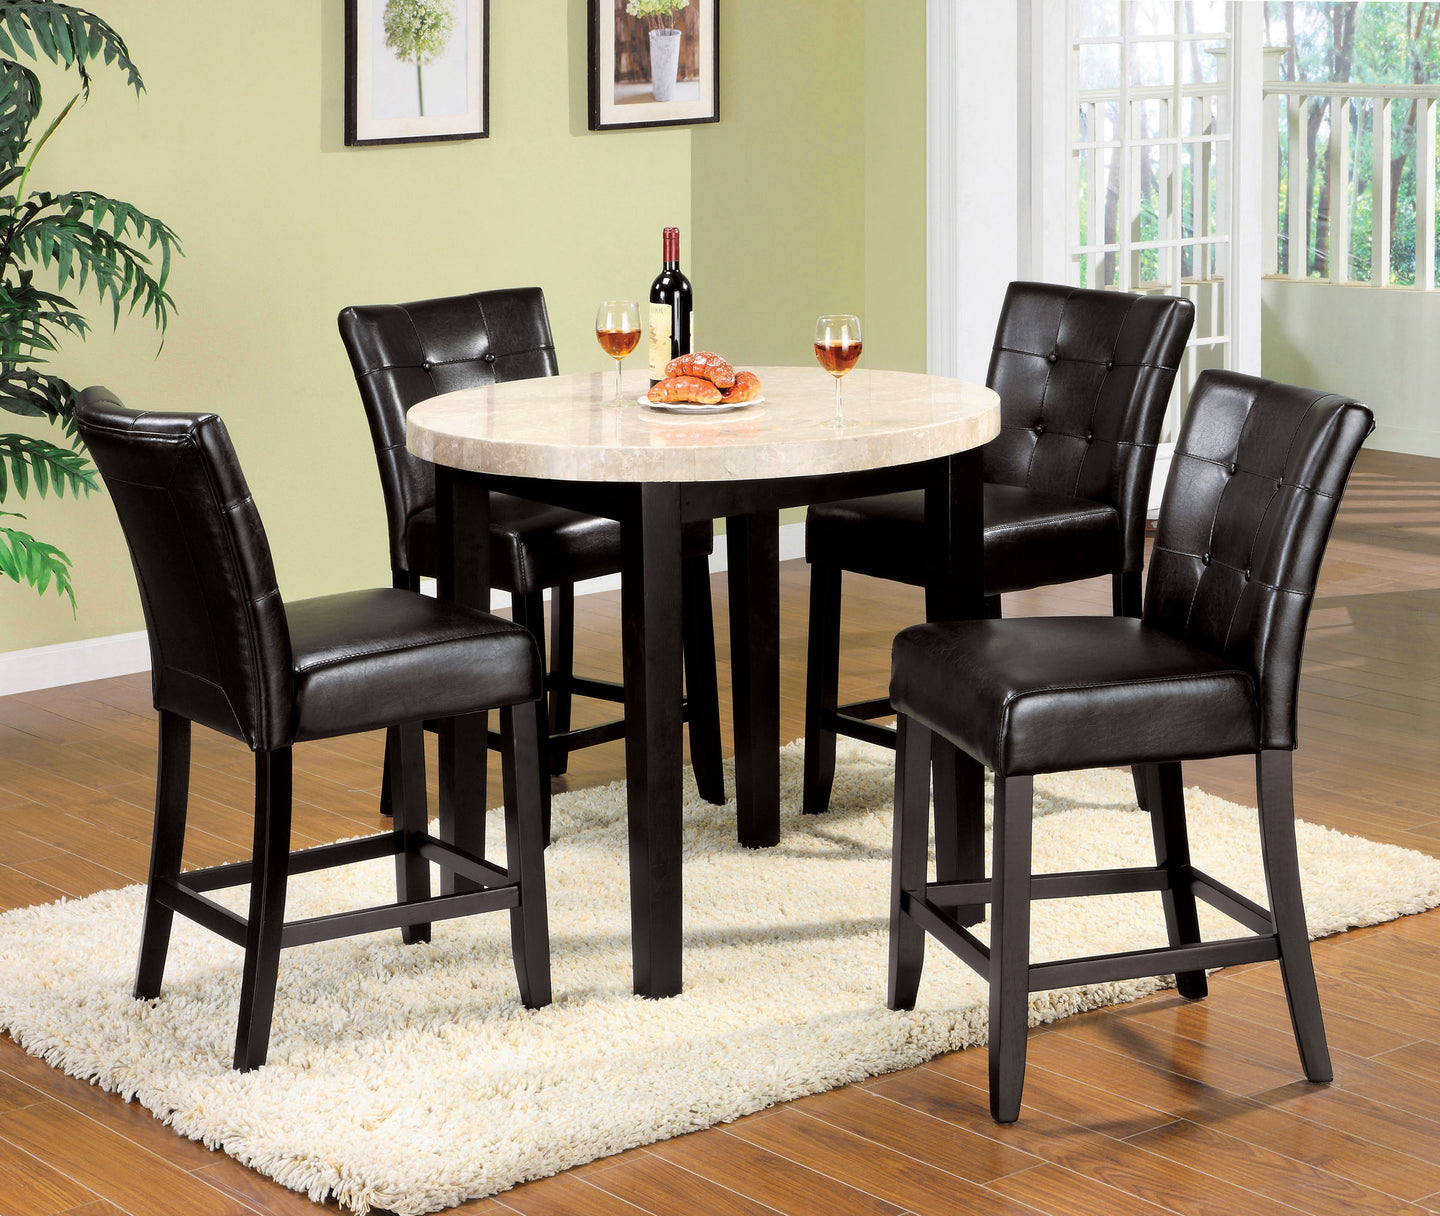 Marion II CM3866PT-40 5 Pieces Espresso Counter Height Table Set